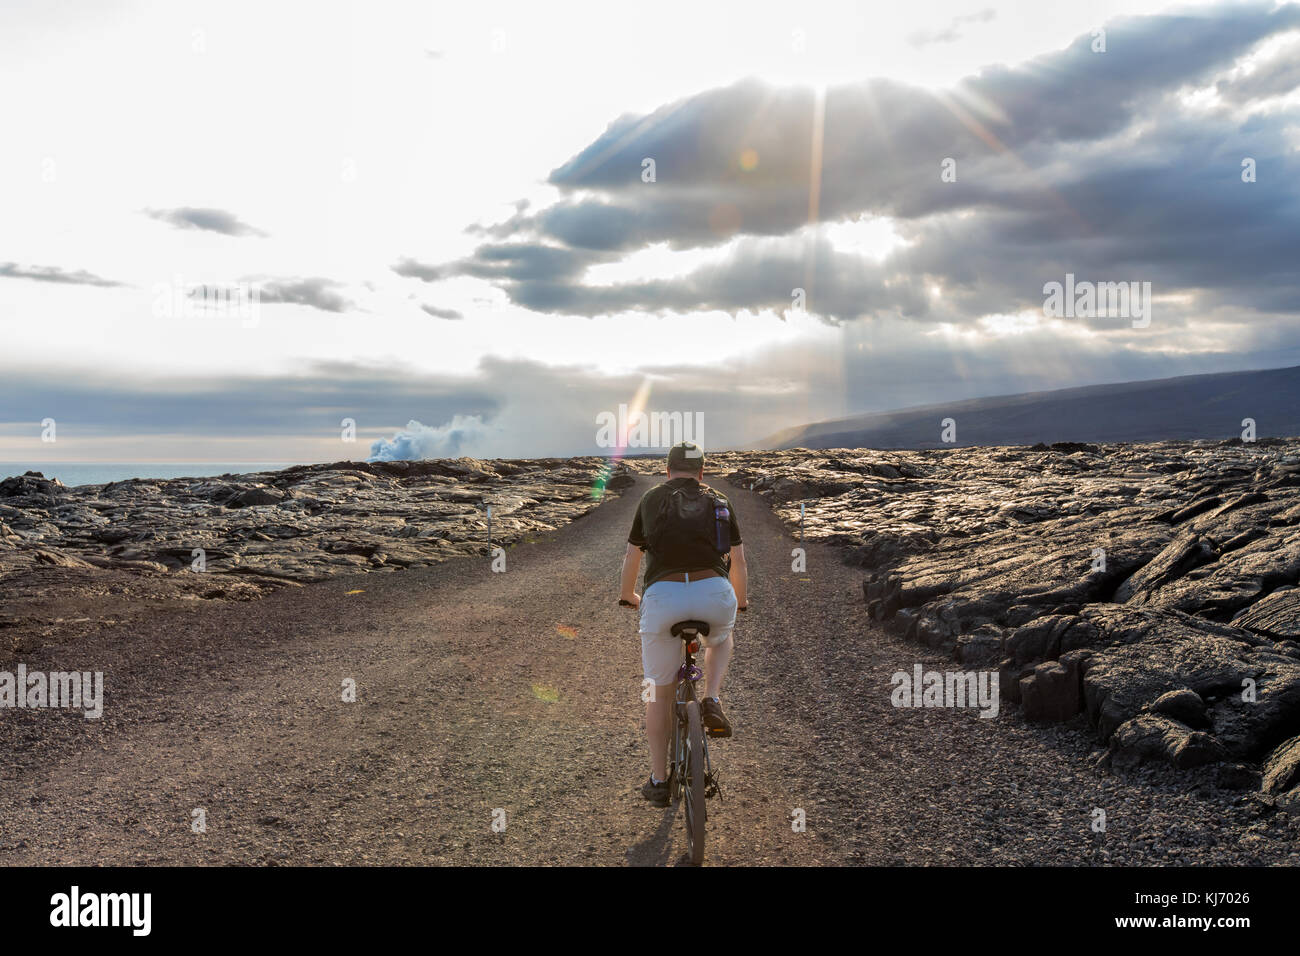 Man riding bicycle through lava field at Volcanoes National Park on the Big Island of Hawaii - Stock Image